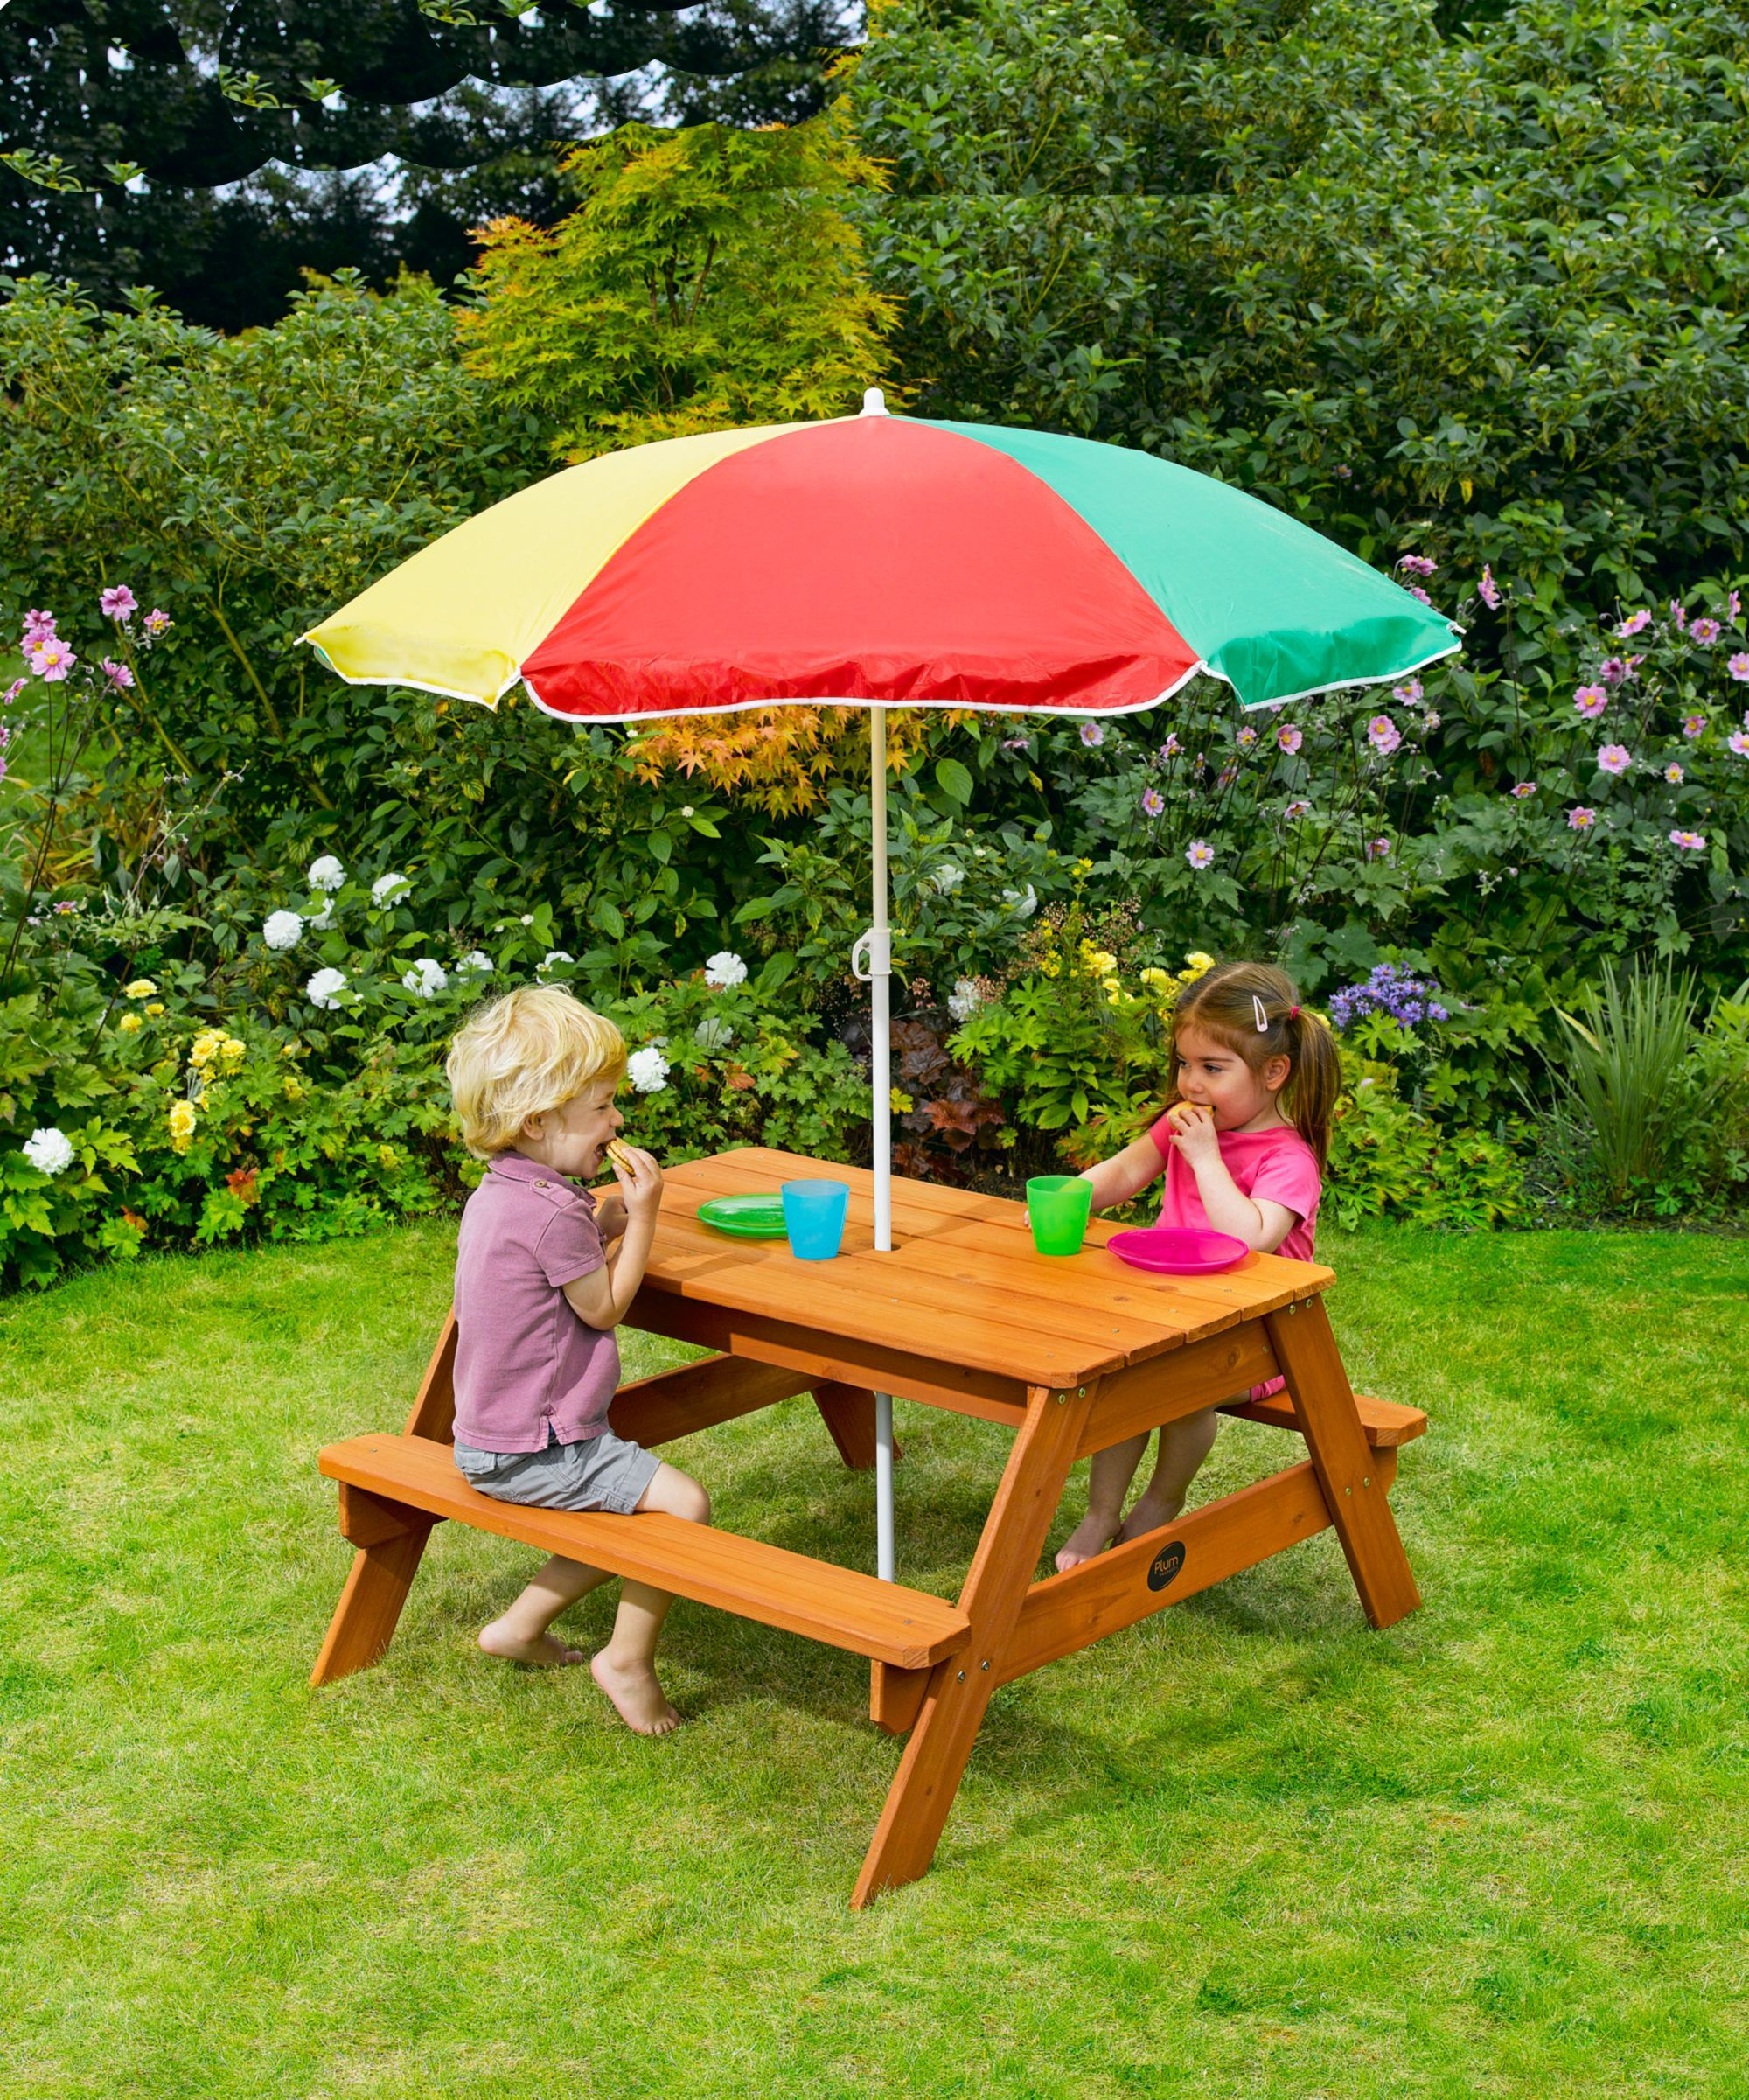 Childrens Picnic Table And Parasol ELC κIdЅ Outdoor Play - Picnic table parasol